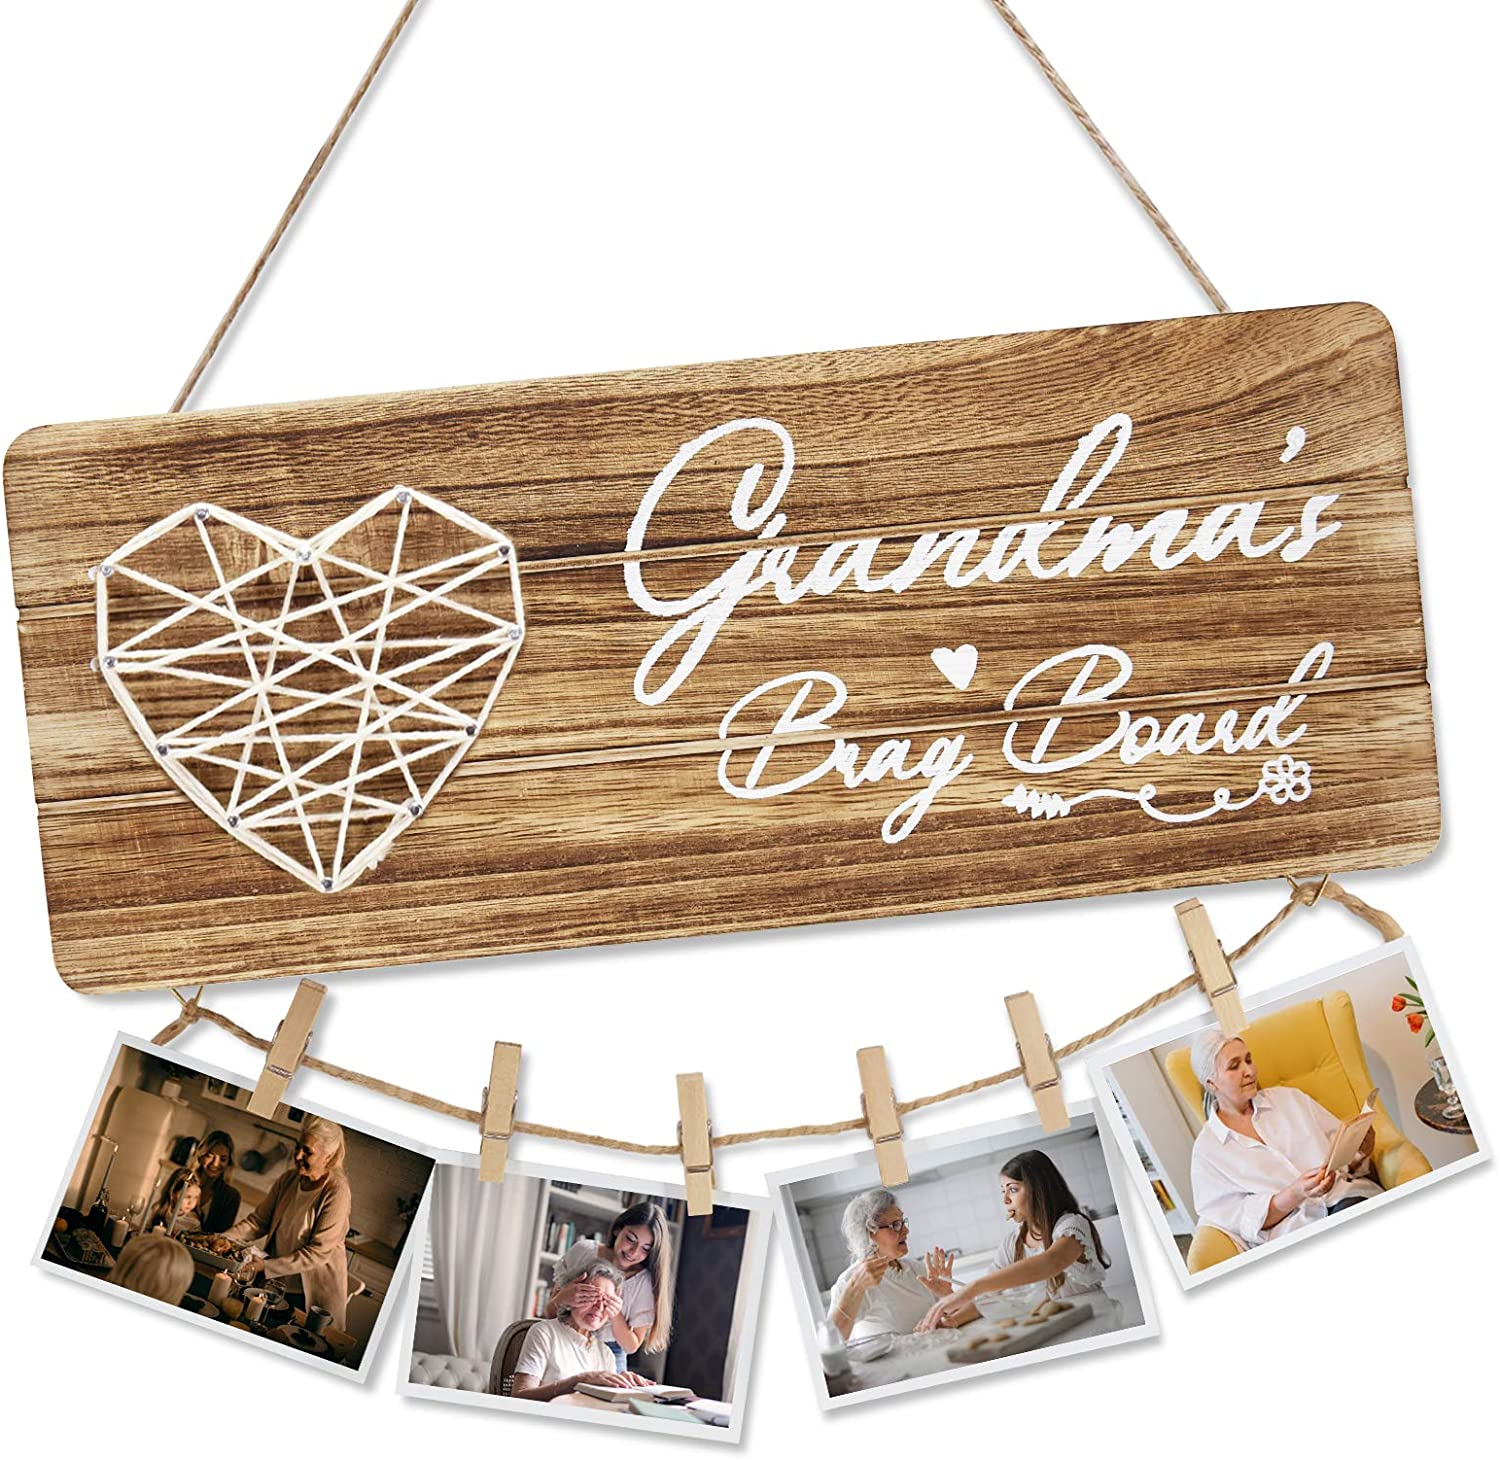 Grandma Gifts Photo Holder, Rustic Grandma's Brag Board Sign Decor Wooden Hanging with Clips and Twine, Wooden Signs for Wall Plaques Gifts Photo Hanging for Grandma from Granddaughter and Grandson